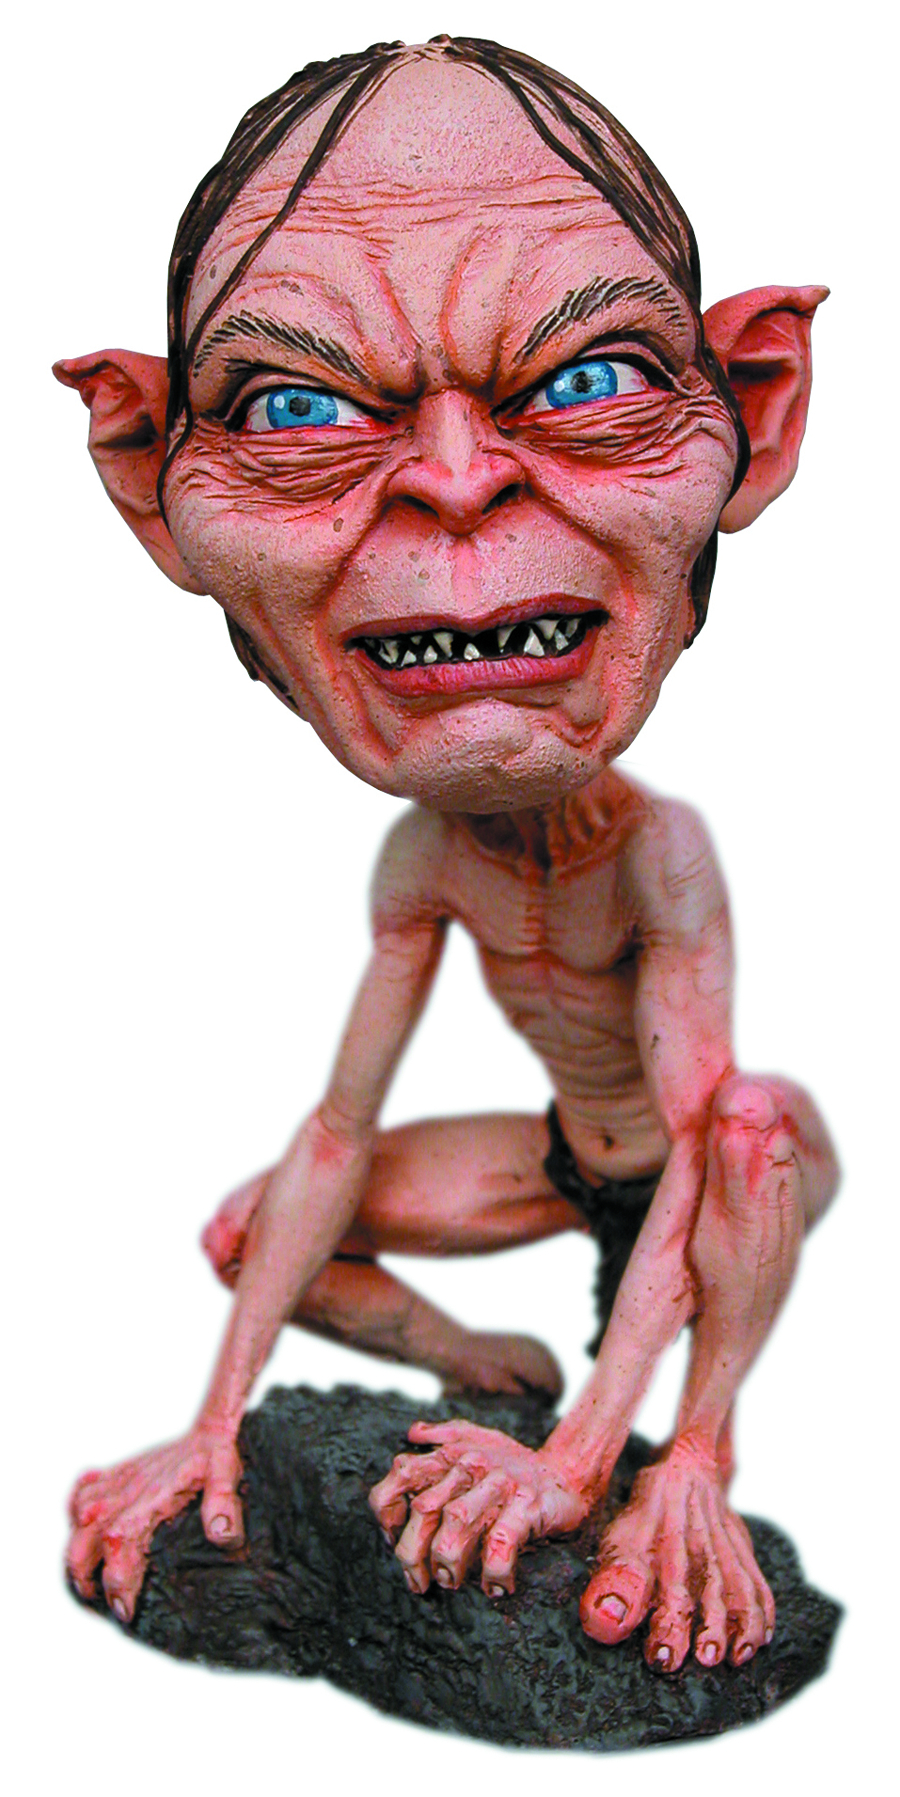 LOTR GOLLUM HEAD KNOCKER